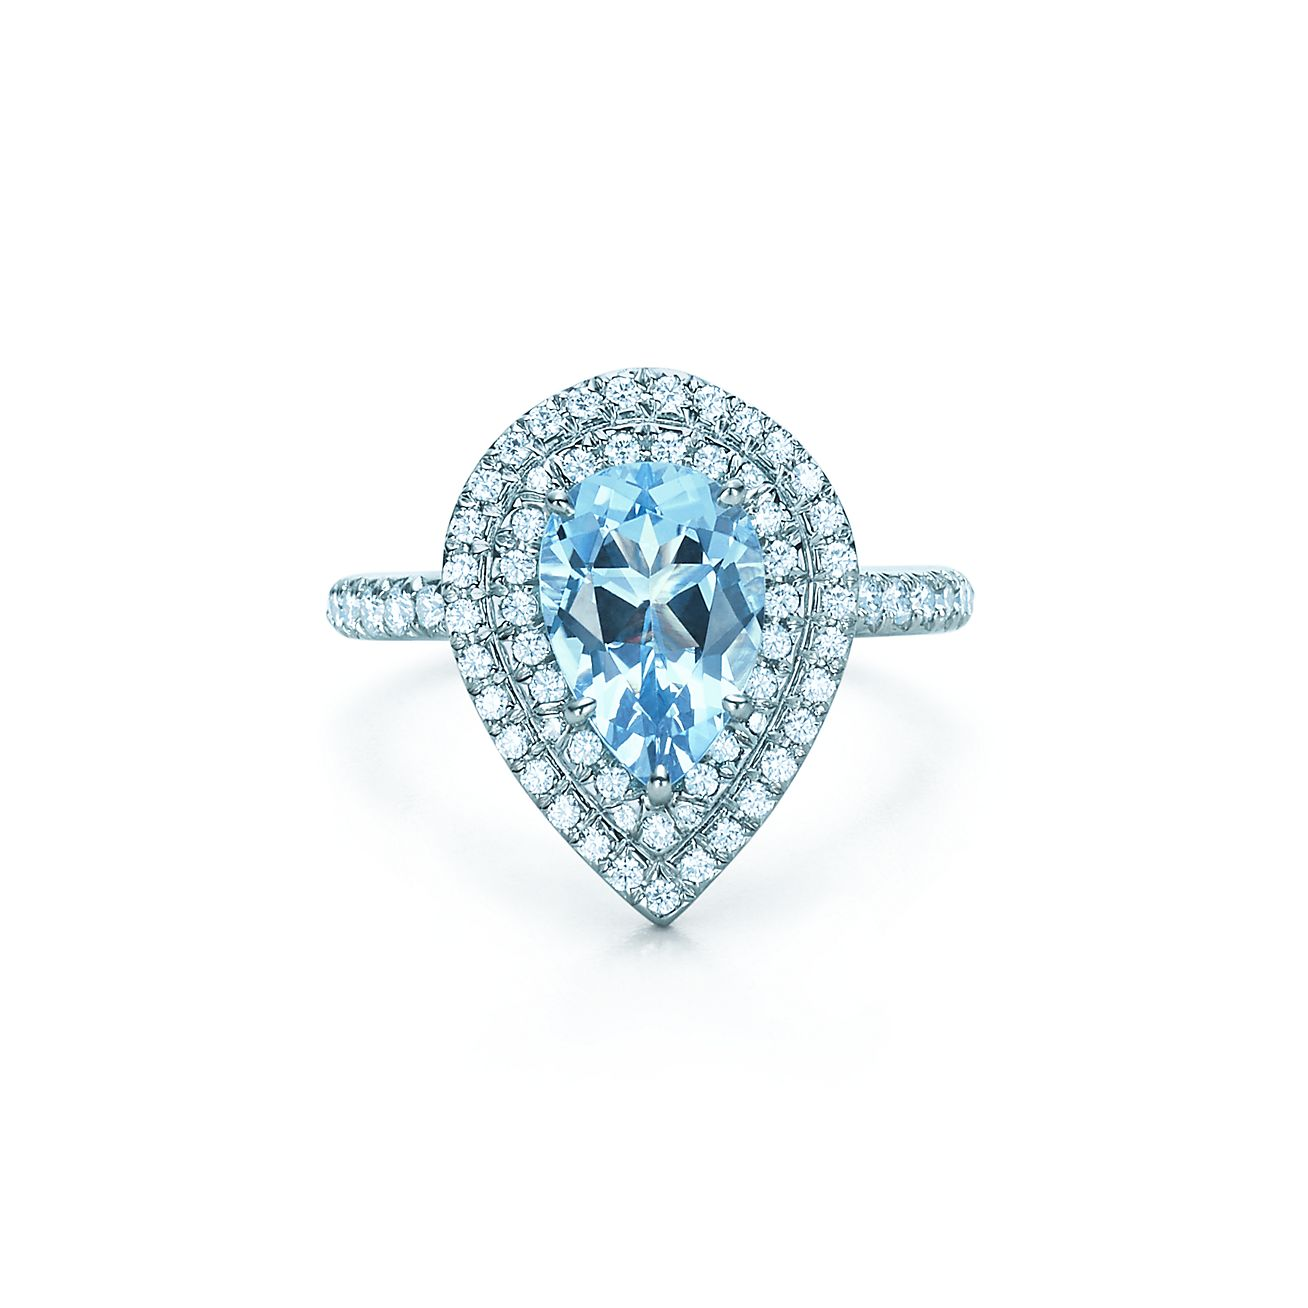 tiffany soleste ring in platinum with an aquamarine and